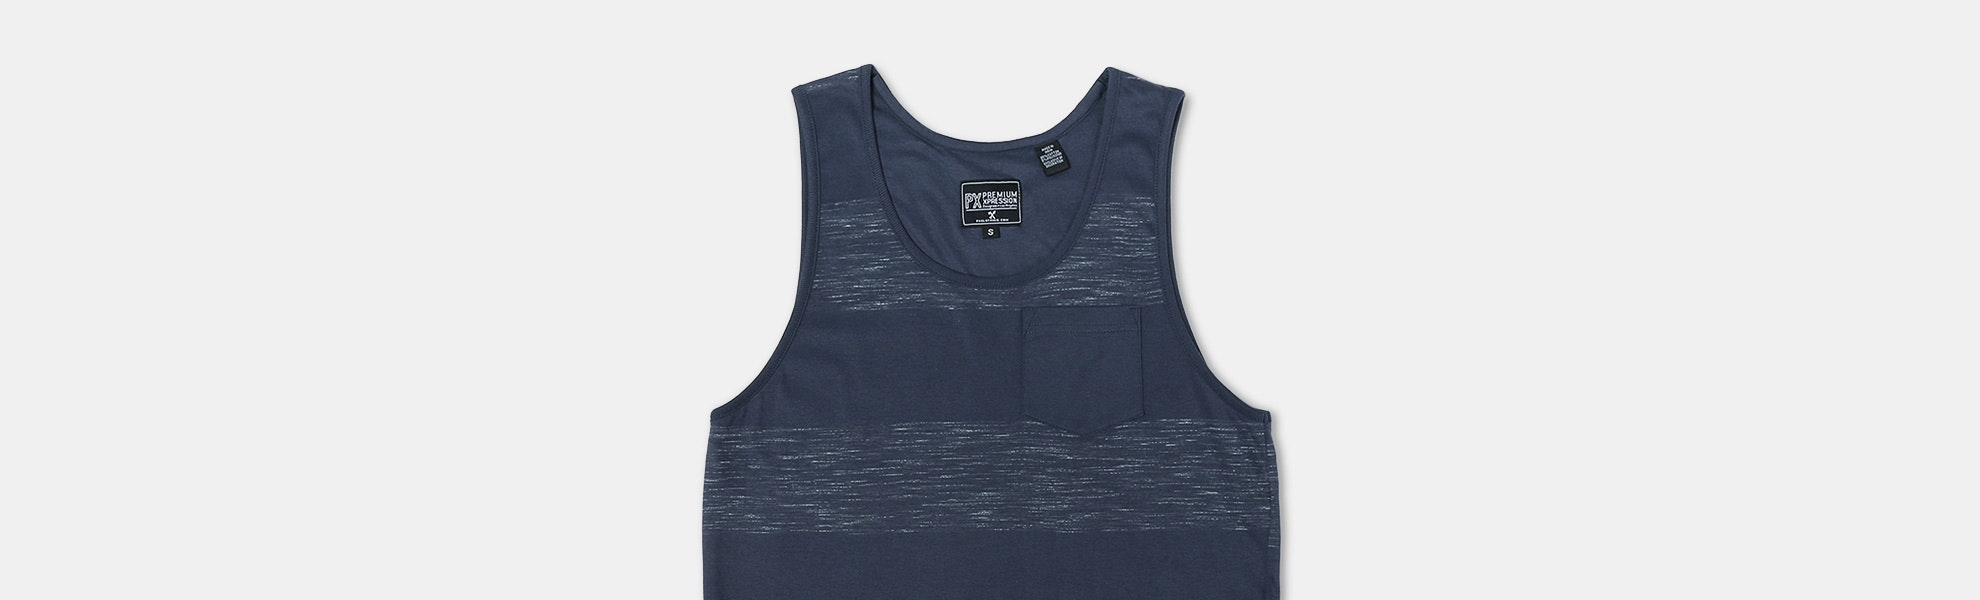 PX Clothing Sonny Tank Top